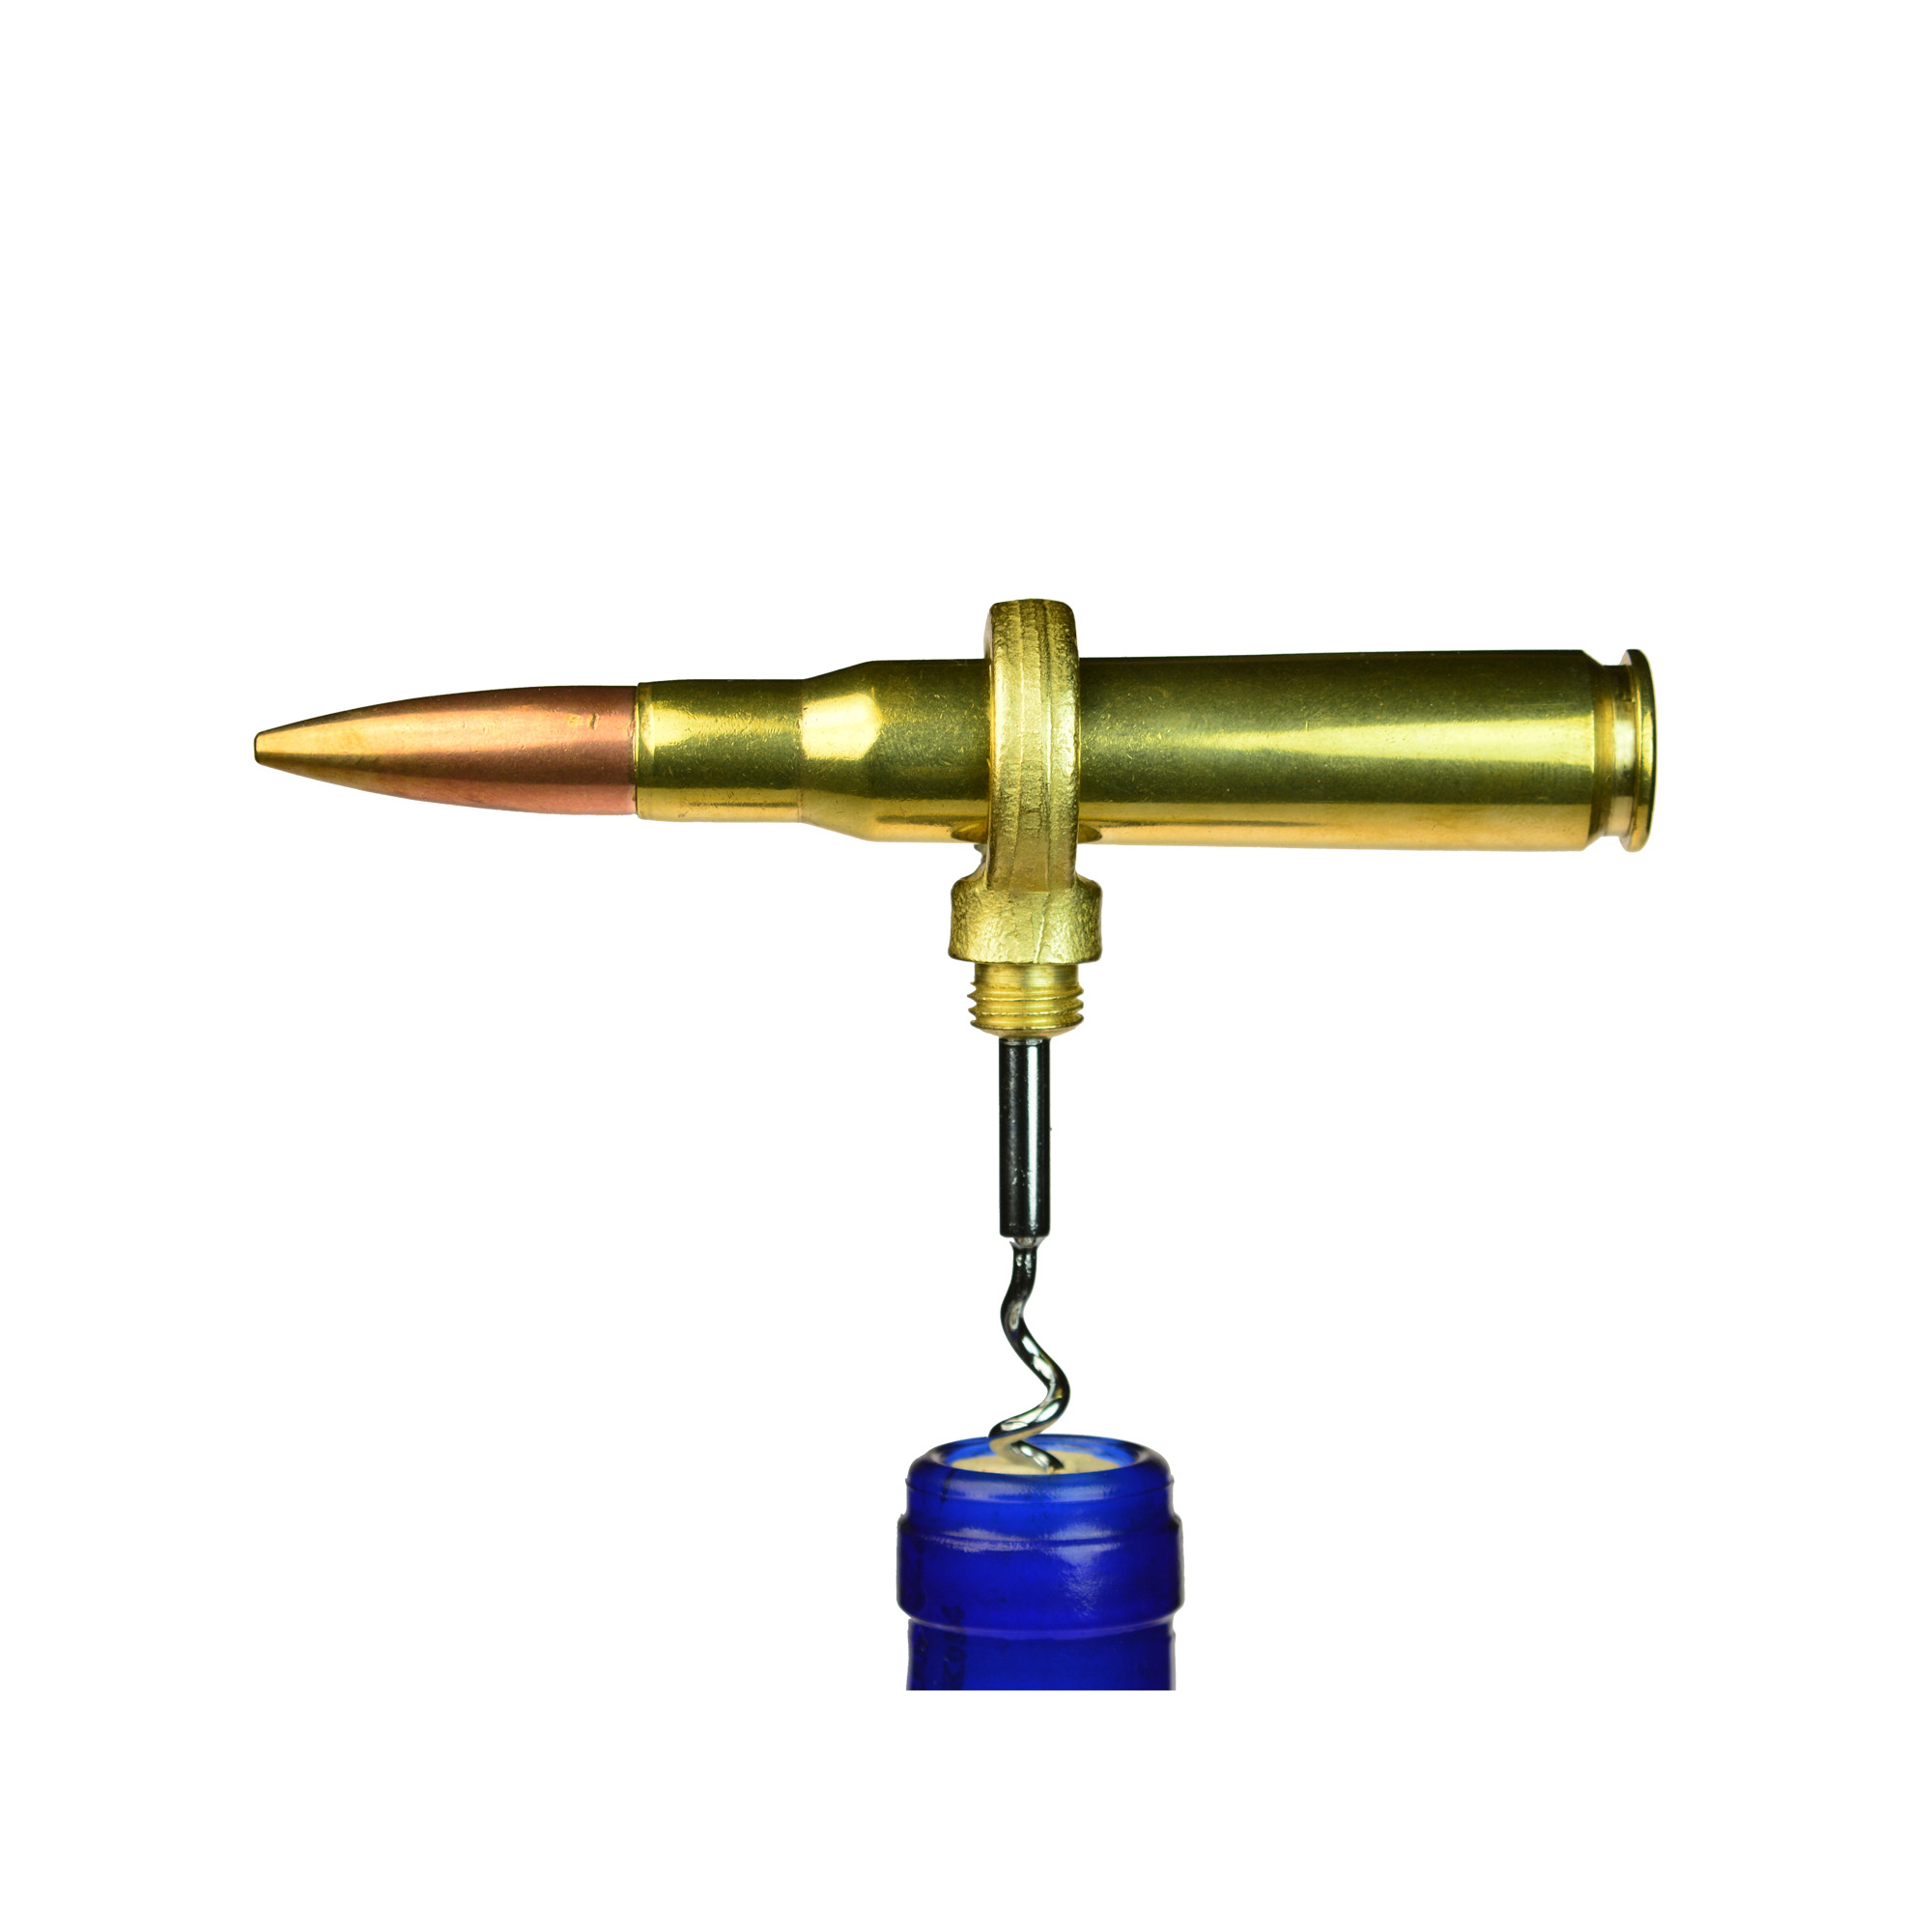 "With the Bullet Corkscrew"" you can bring a classic genuine brass 50 caliber casing to your favorite bottle of chardonnay. The end of the bullet unscrews to reveal the corkscrew. Simply slide the bullet through the hole and you have the perfect amount of leverage to open any bottle."